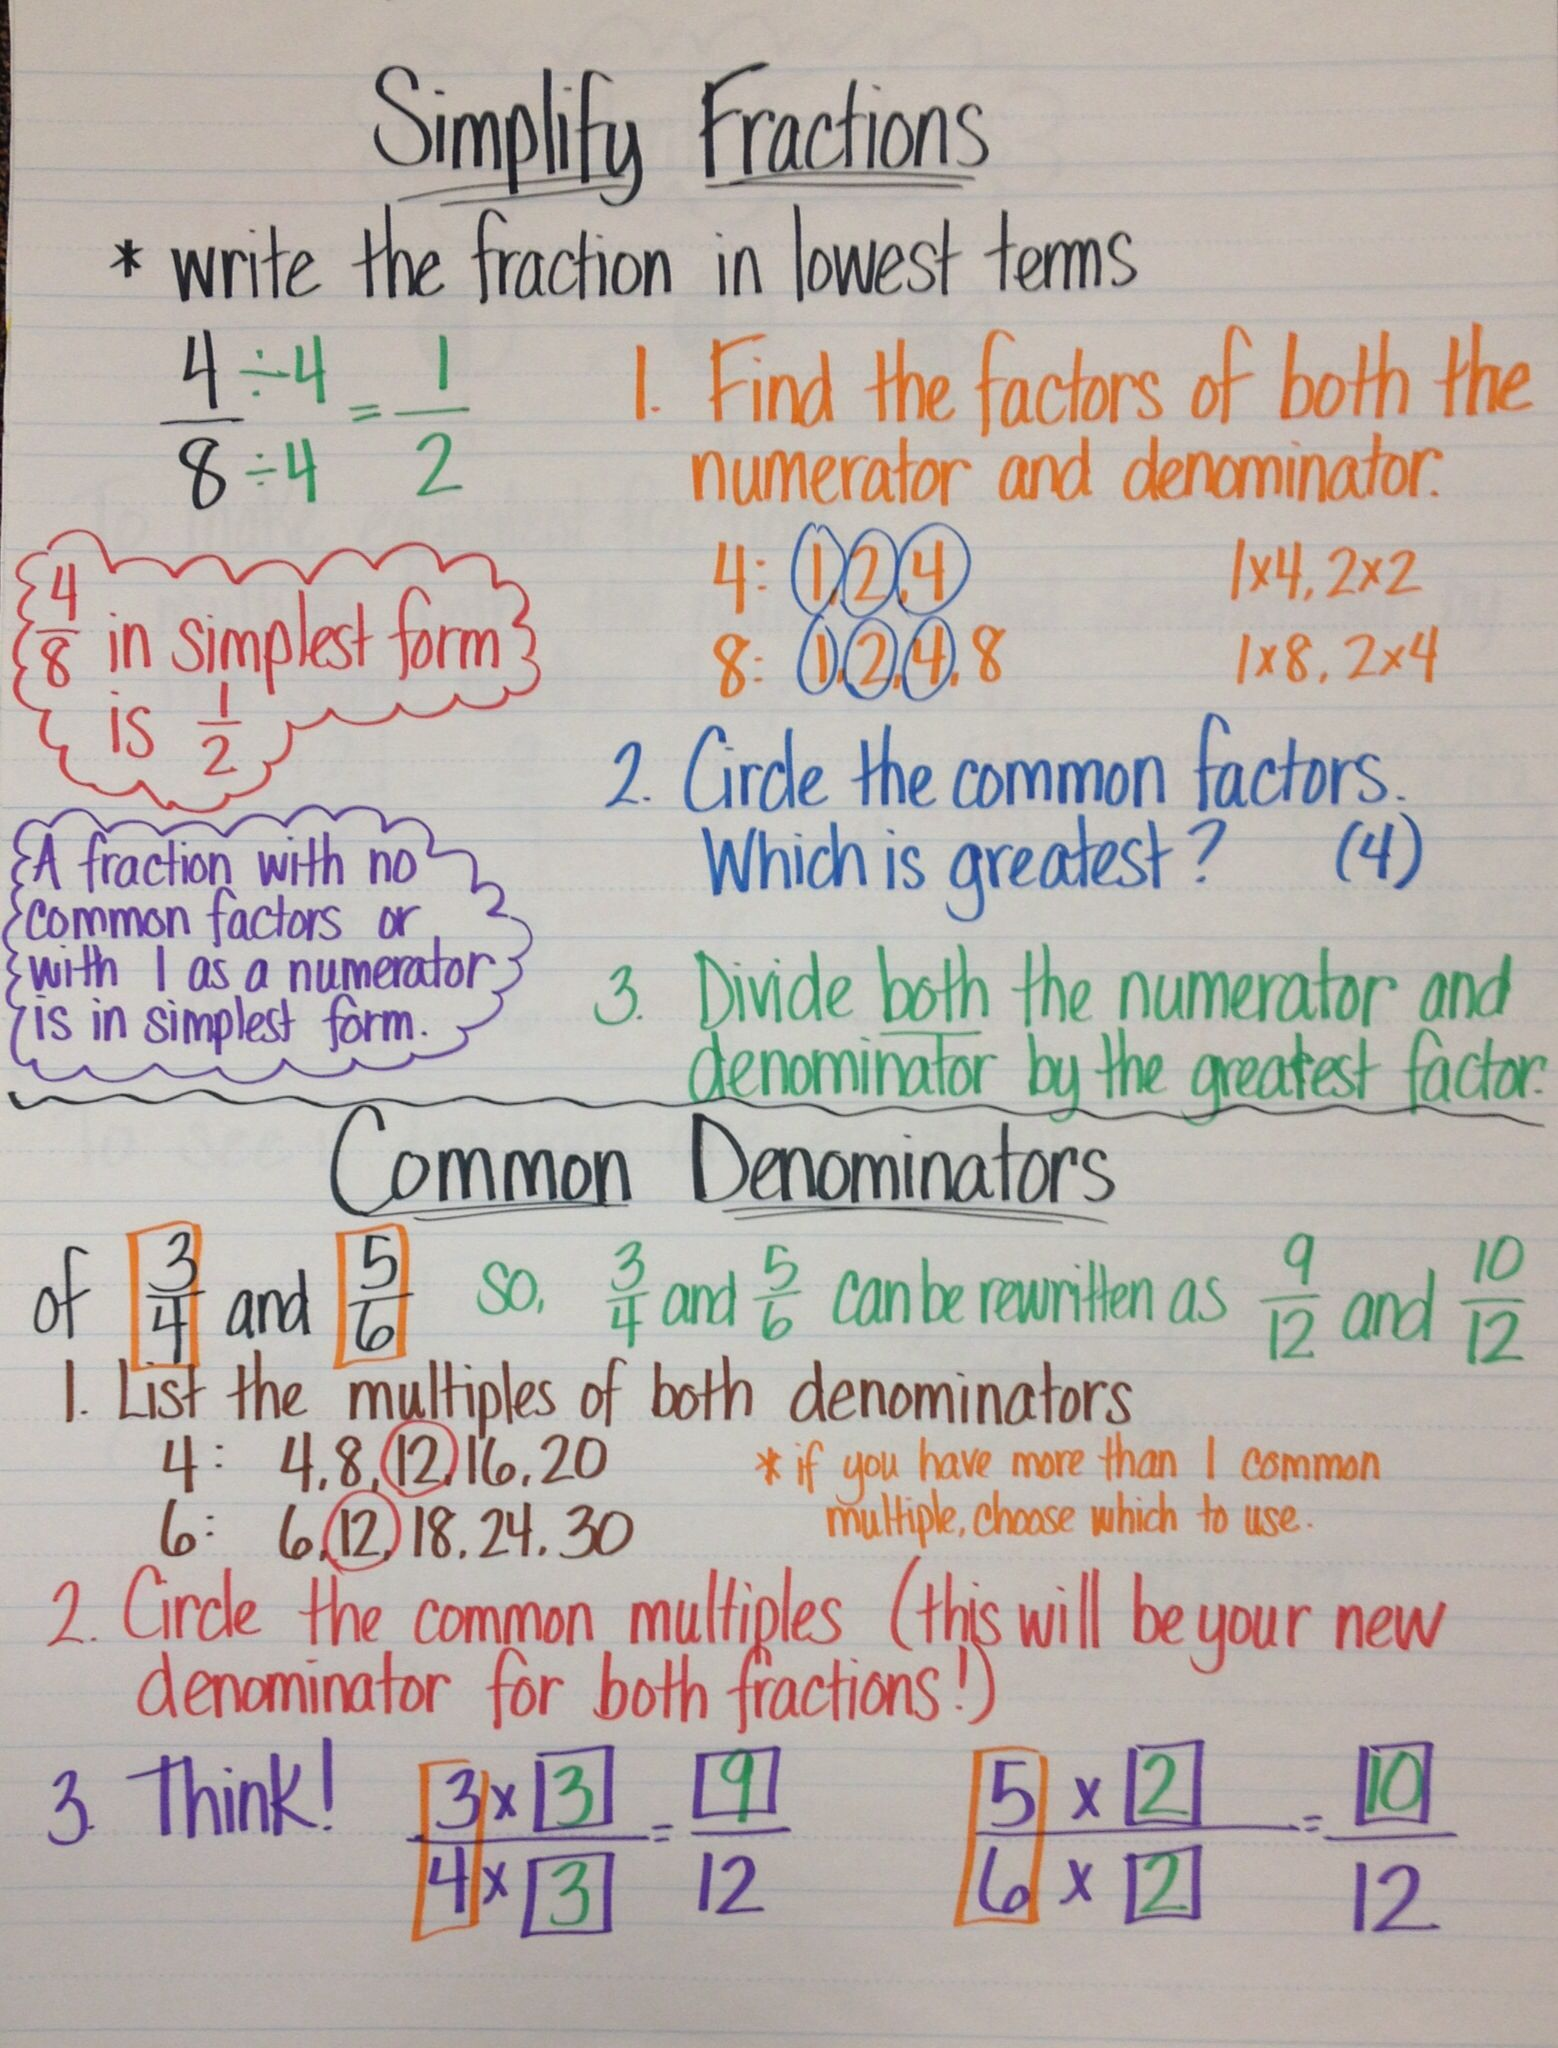 simplify fractions and common denominators anchor chart | fraction